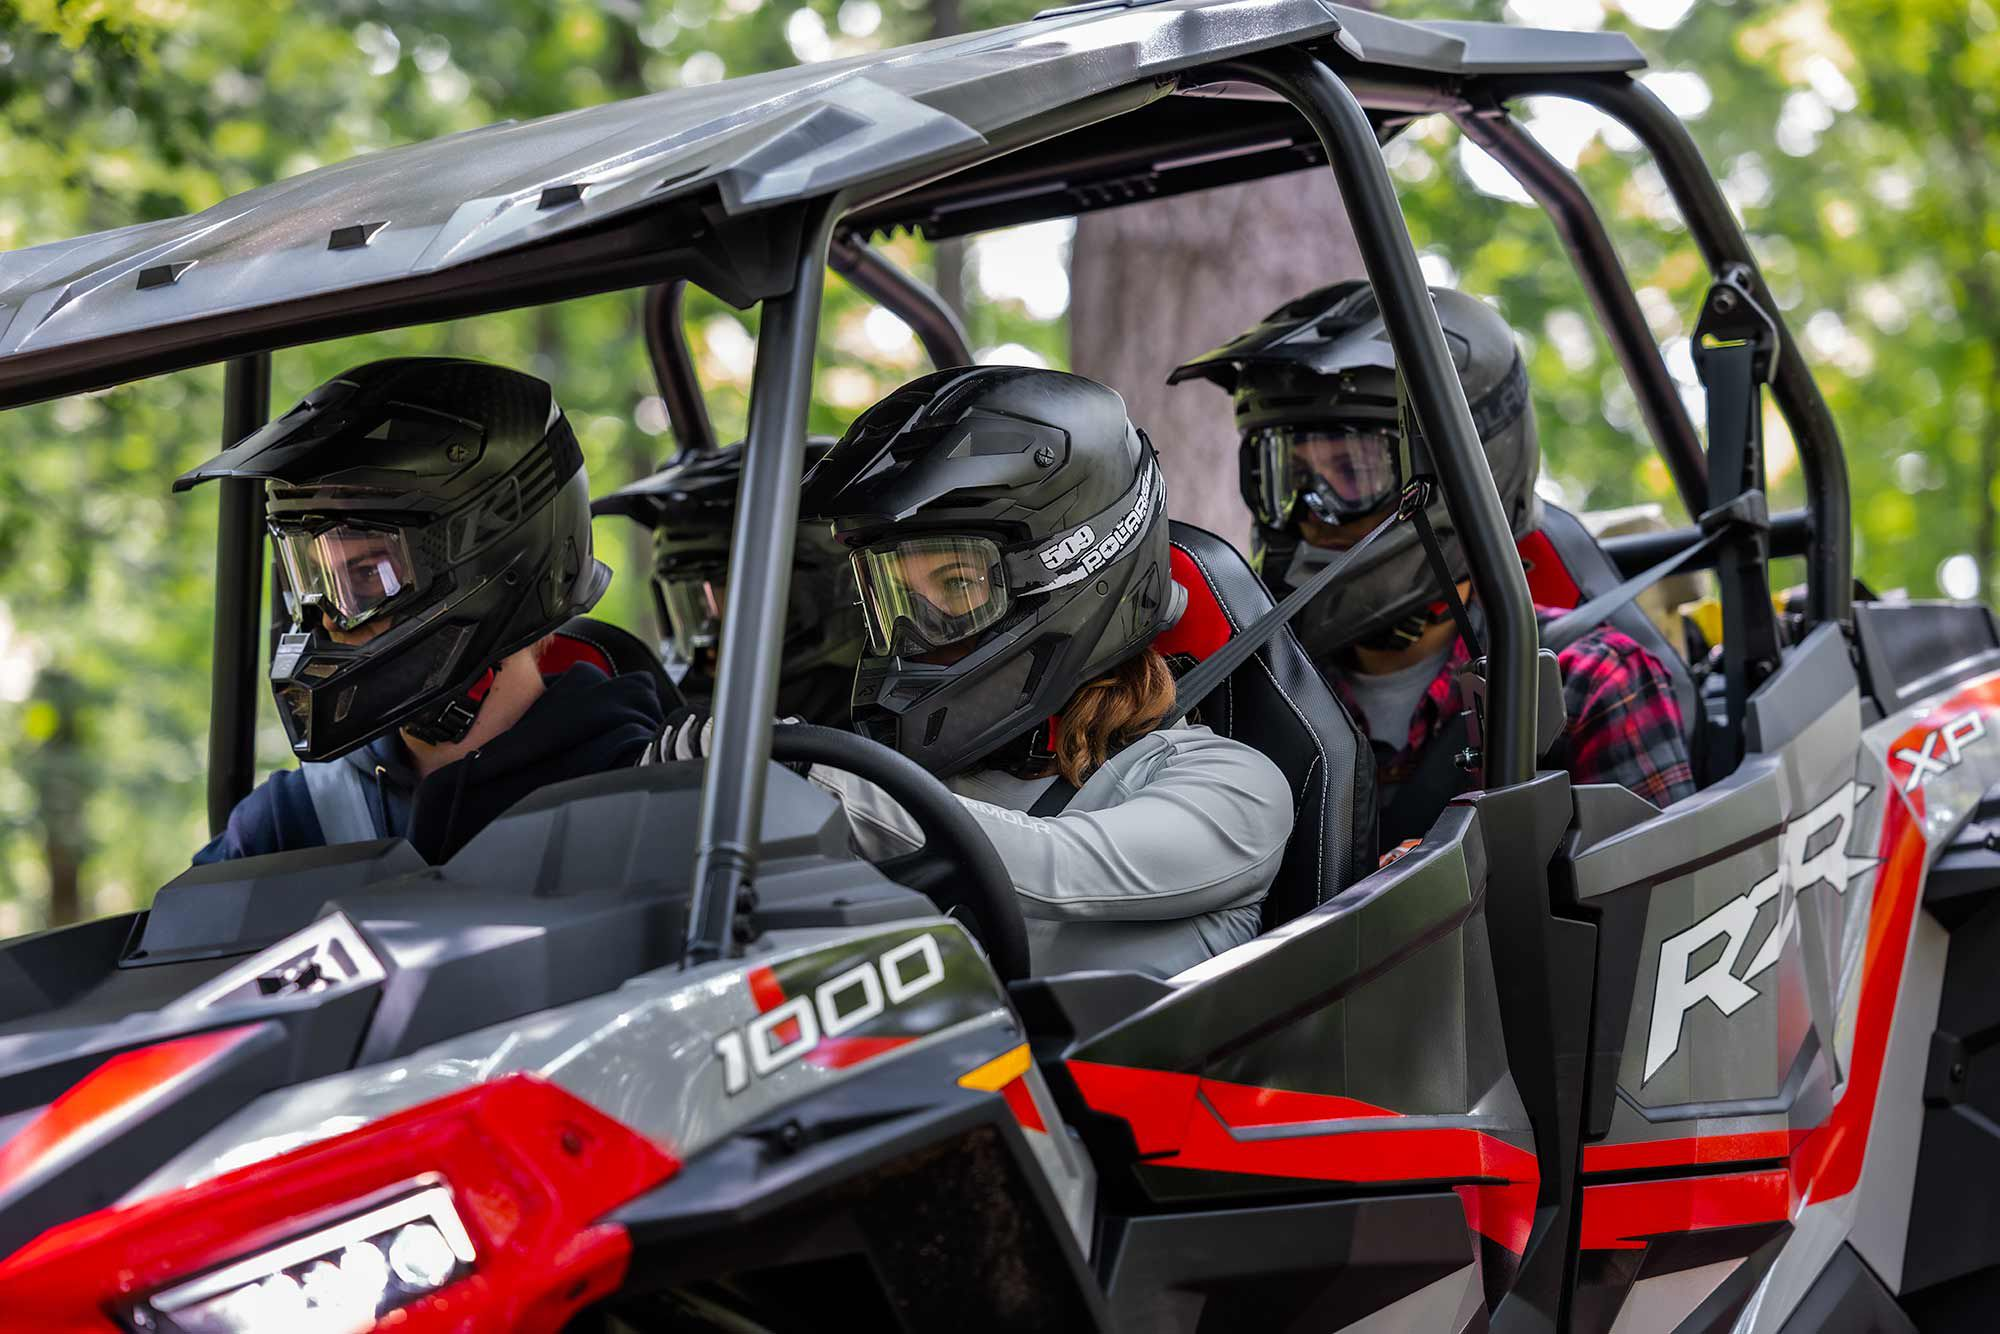 Seating for the entire family makes these RZR options some of the most fun.